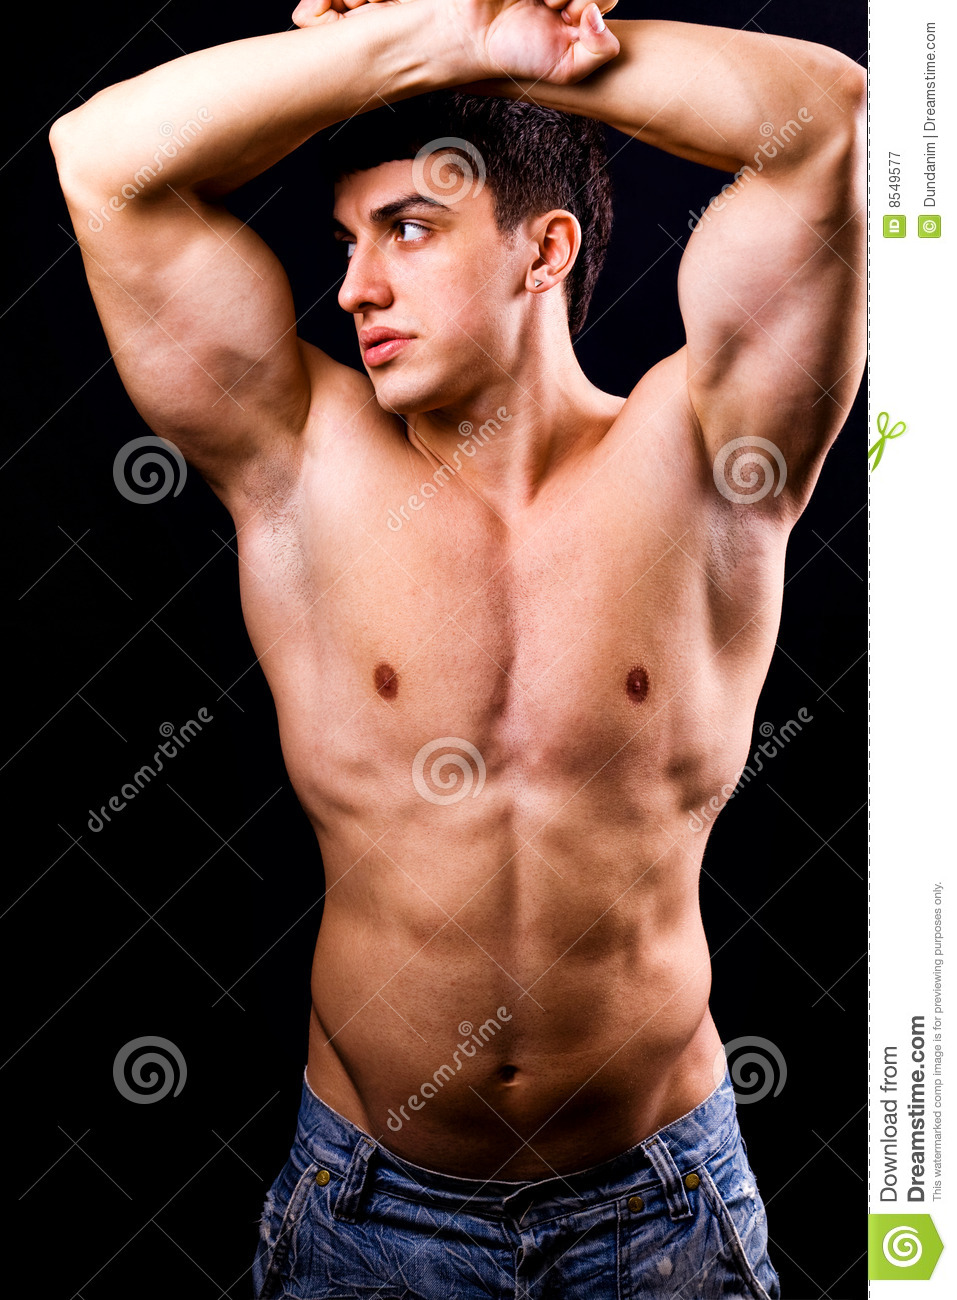 Sexy muscle body